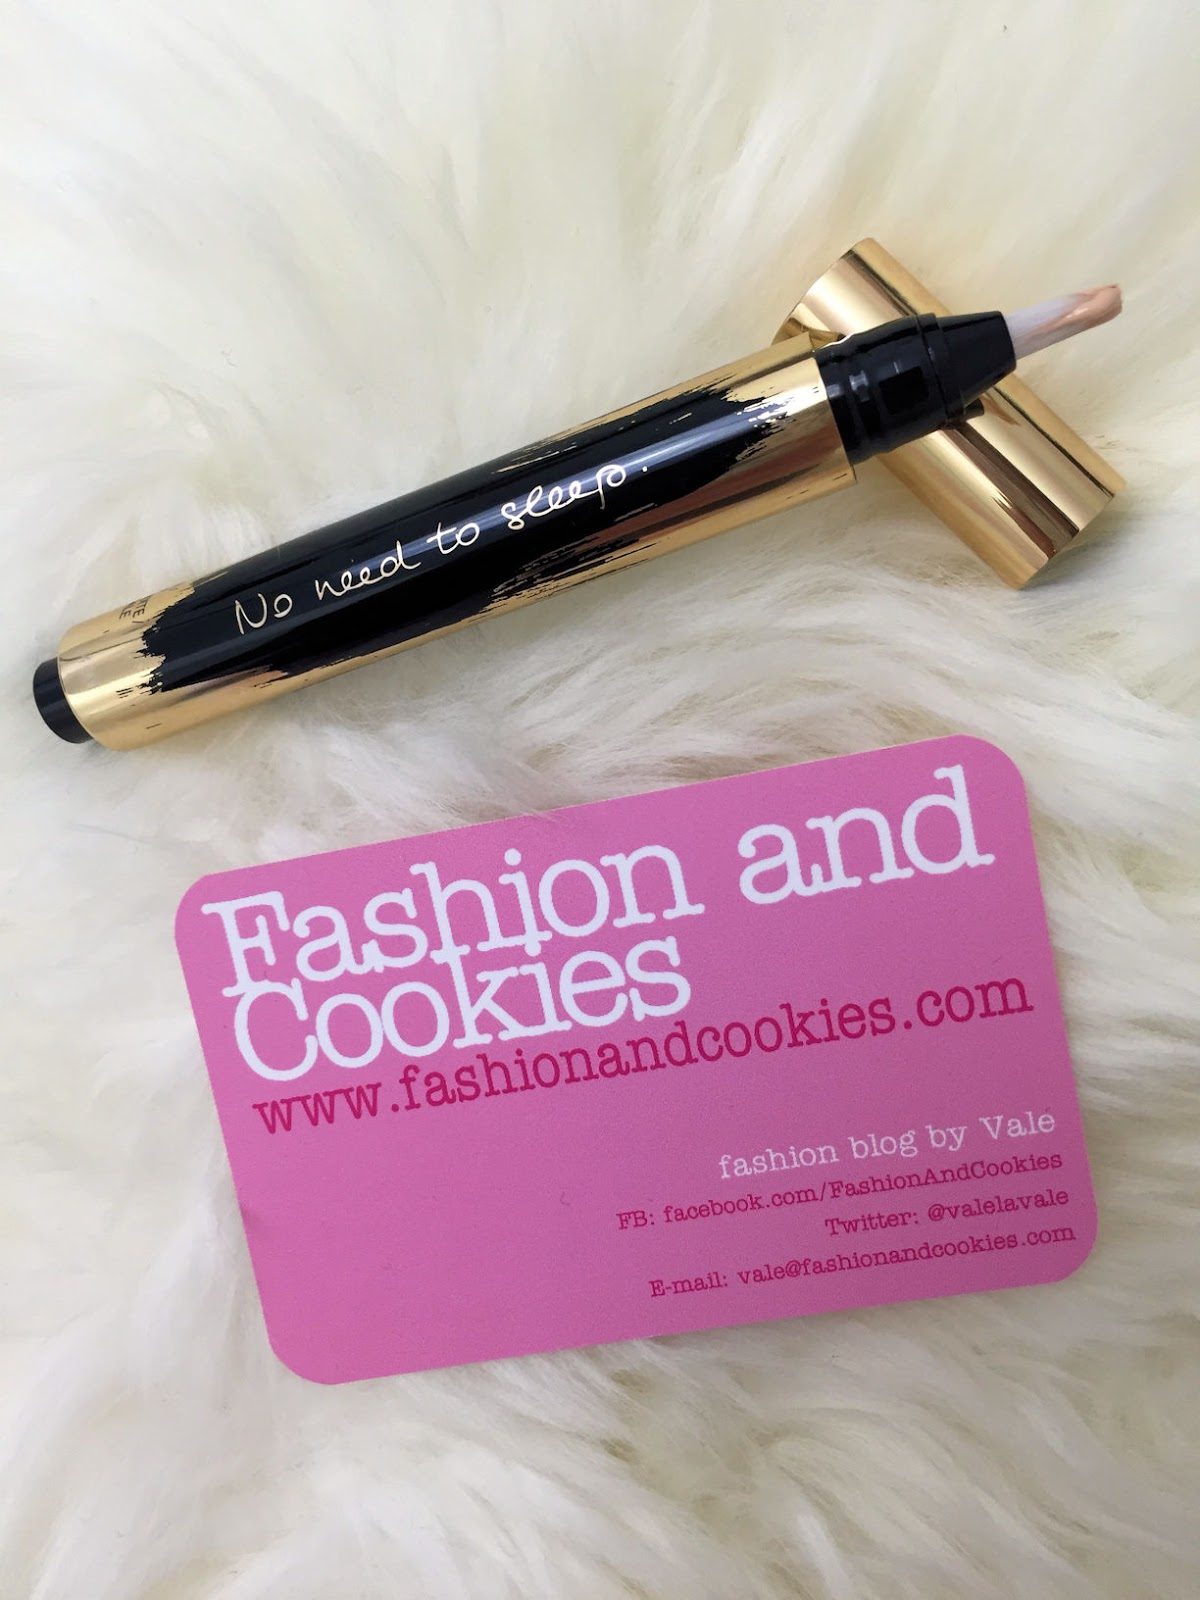 No need to sleep YSL Touche Éclat collector slogan edition on Fashion and Cookies beauty blog, beauty blogger